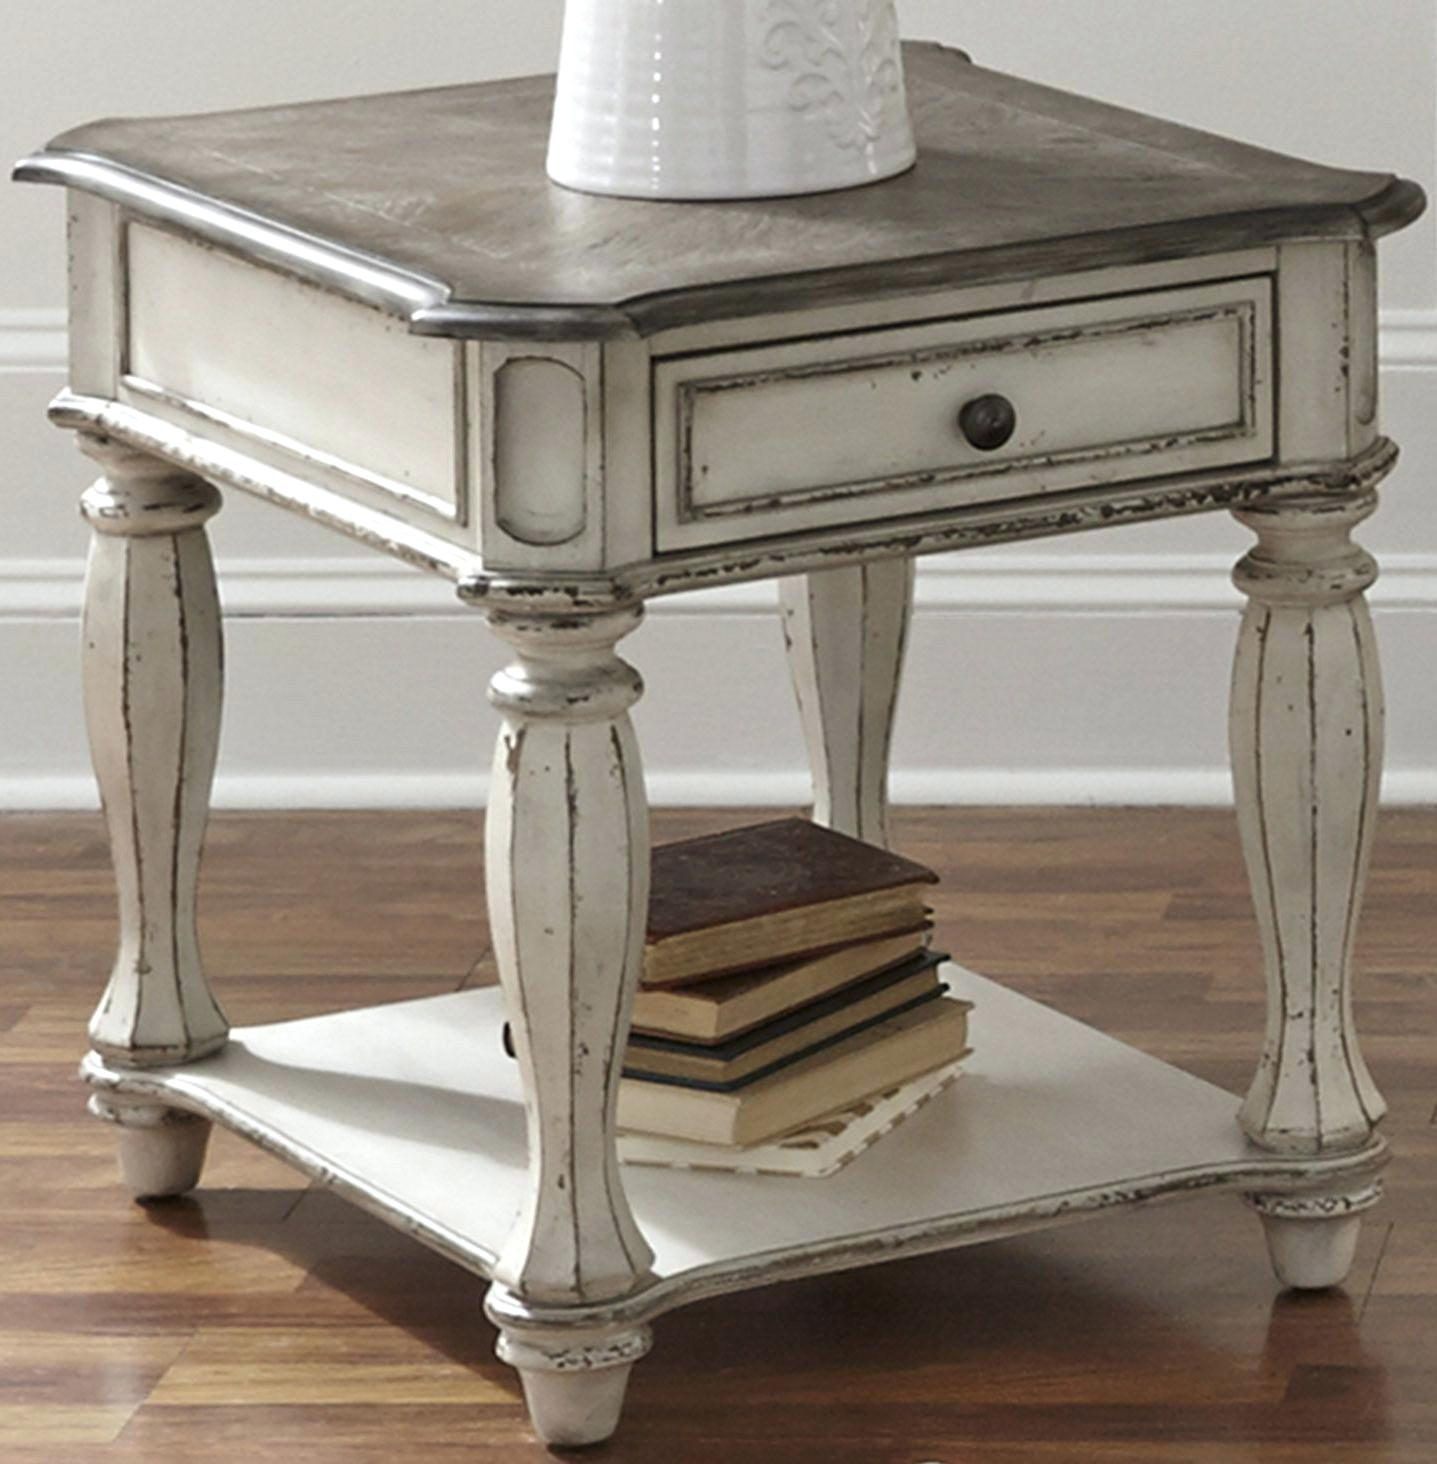 wedge shaped end tables occasional accent table side spool whole tablecloths crystal nightstand lamps pier clearance round coffee wood and metal burlap tablecloth stained glass